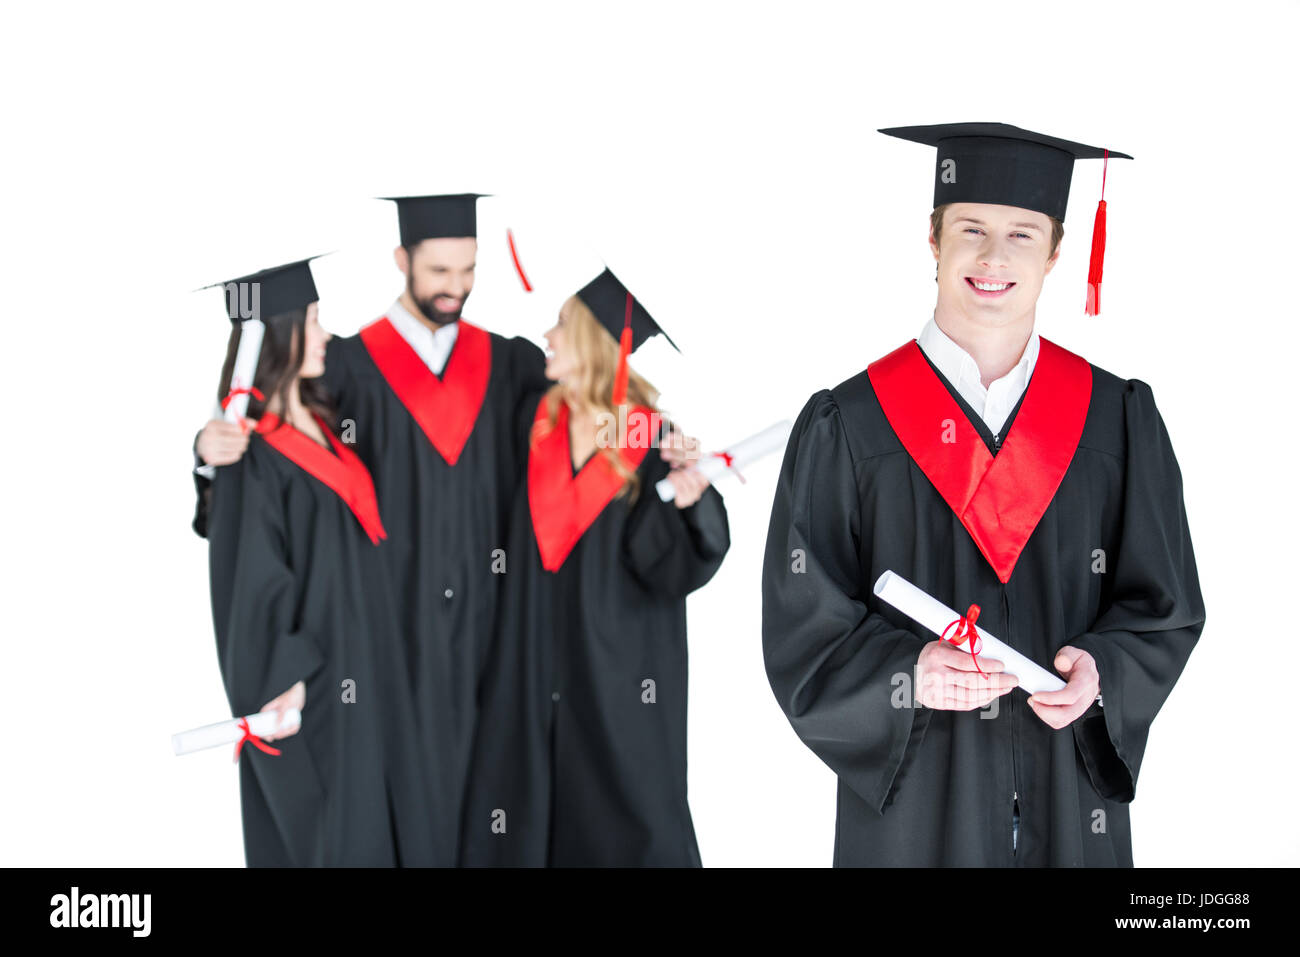 Young student in graduation cap with diploma and friends standing behind isolated on white - Stock Image